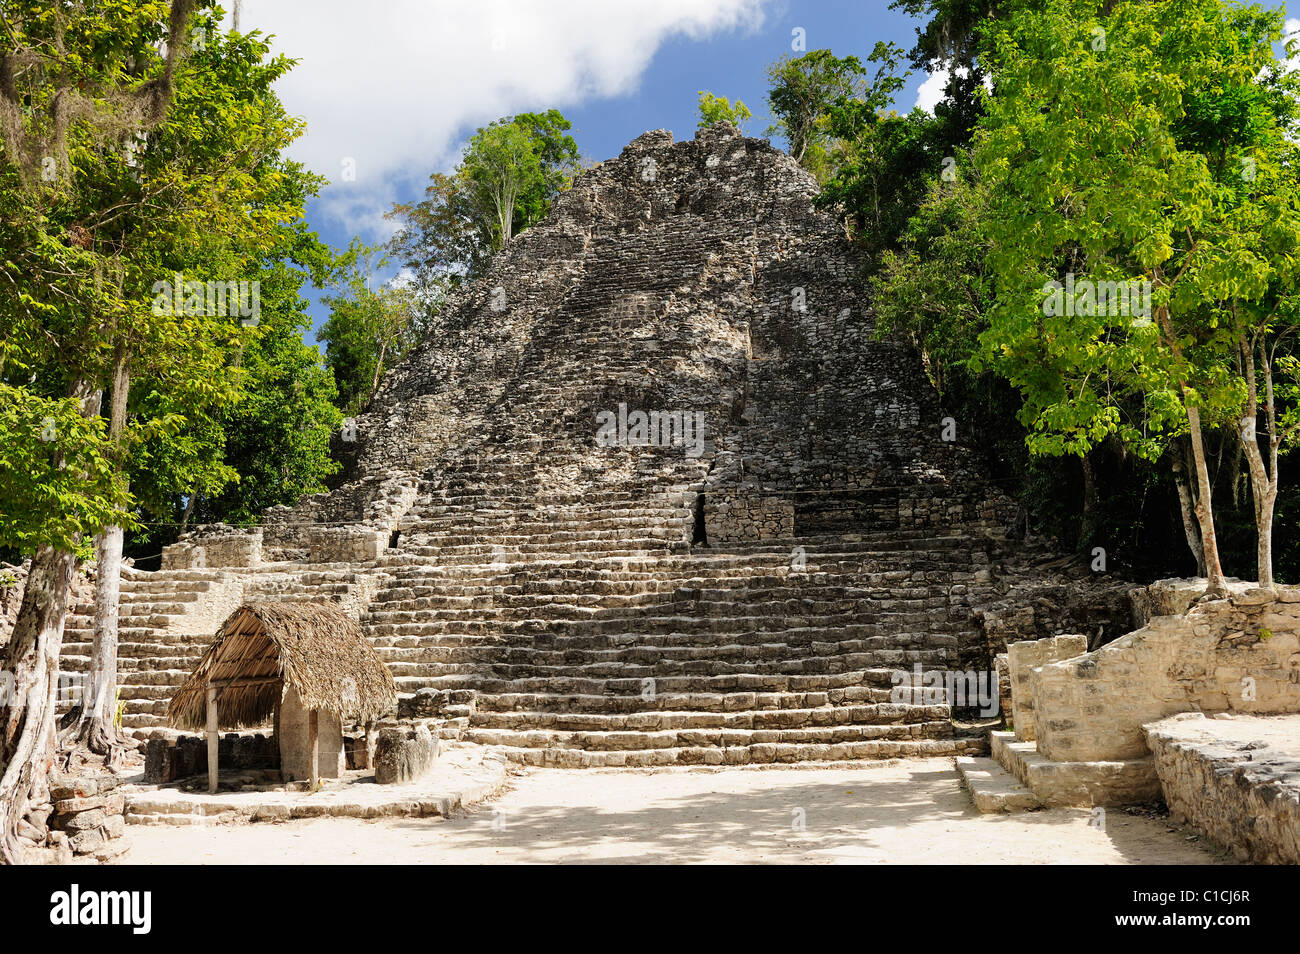 La Iglesia (the Church) in the ruins of Coba in Quintana Roo State, Mexico - Stock Image